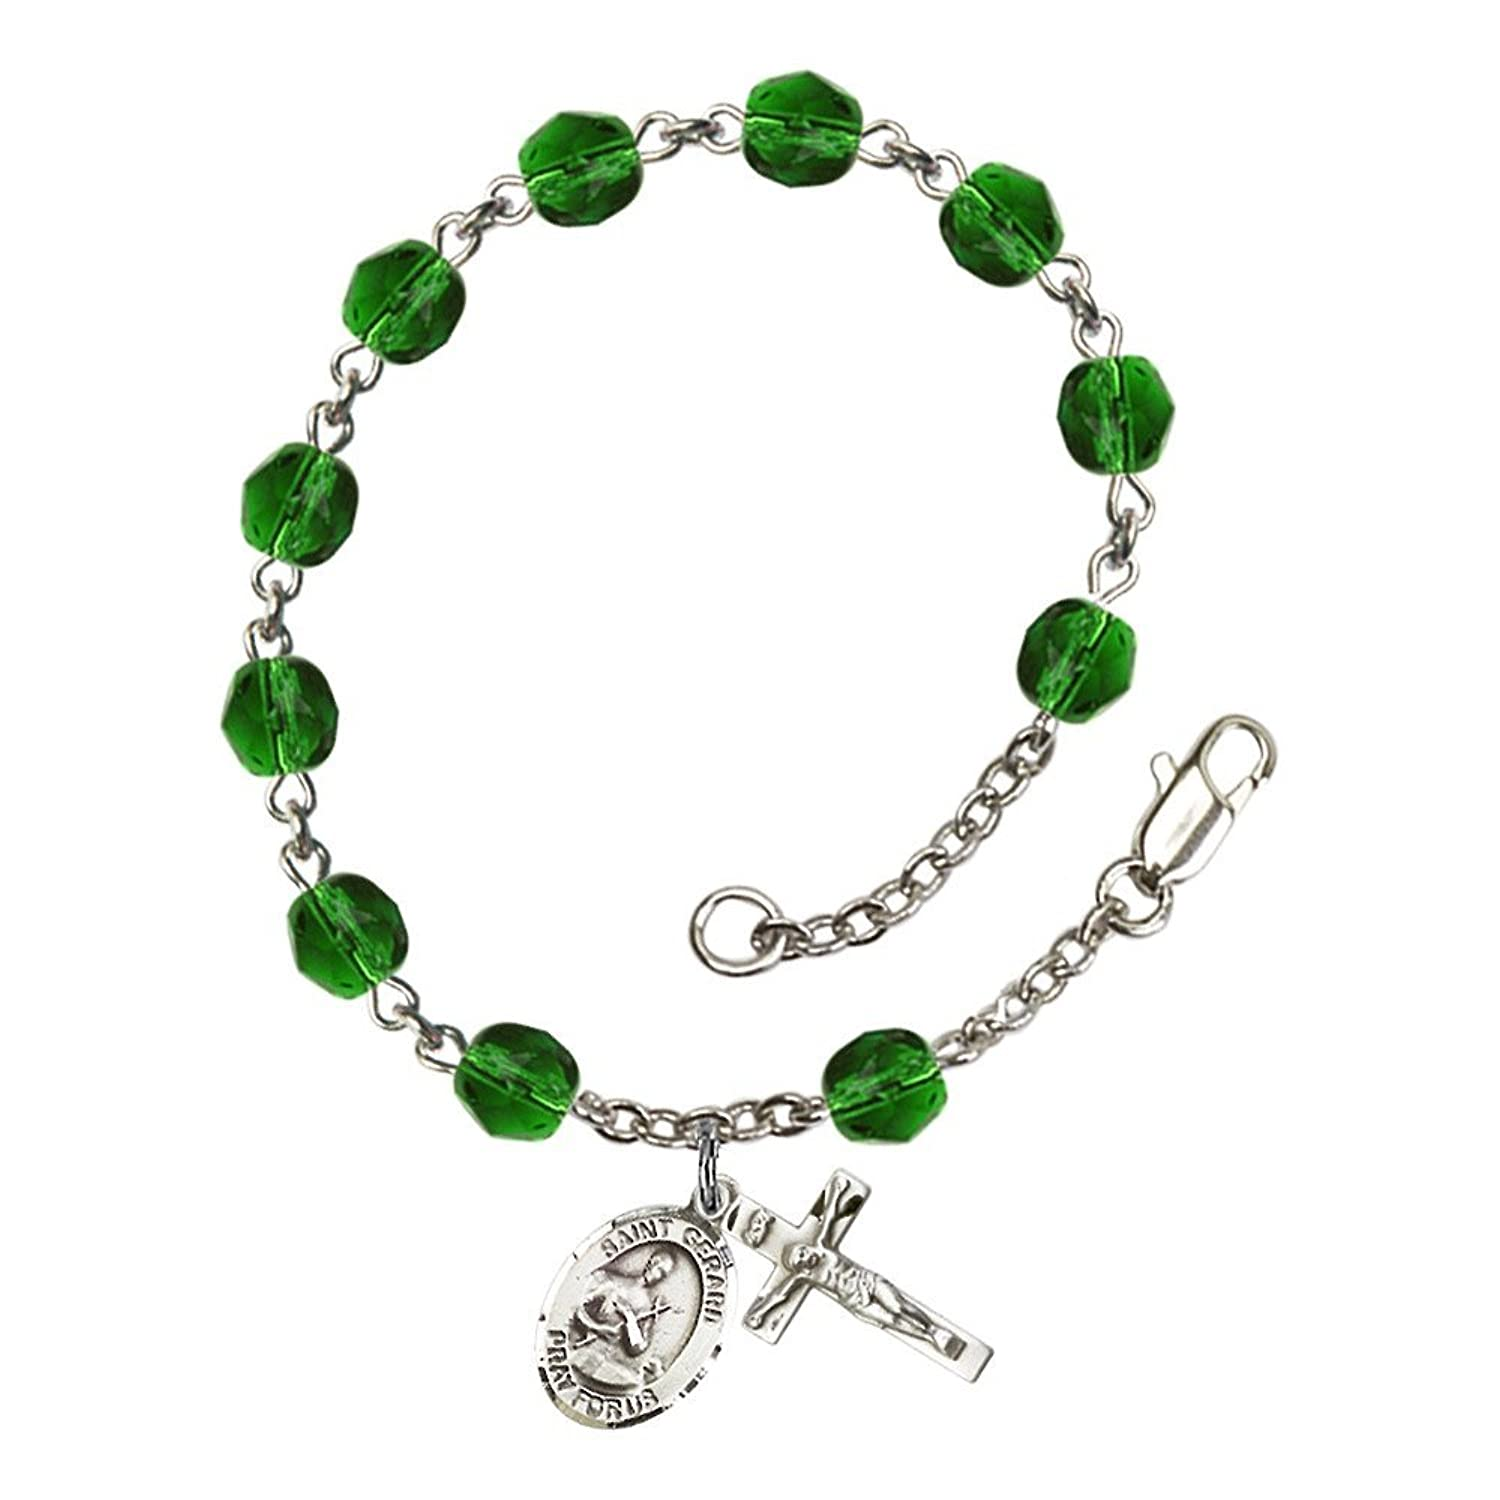 St. Gerard Majella Silver Plate Rosary Bracelet 6mm May Green Fire Polished Beads Crucifix Size 5/8 x 1/4 medal charm